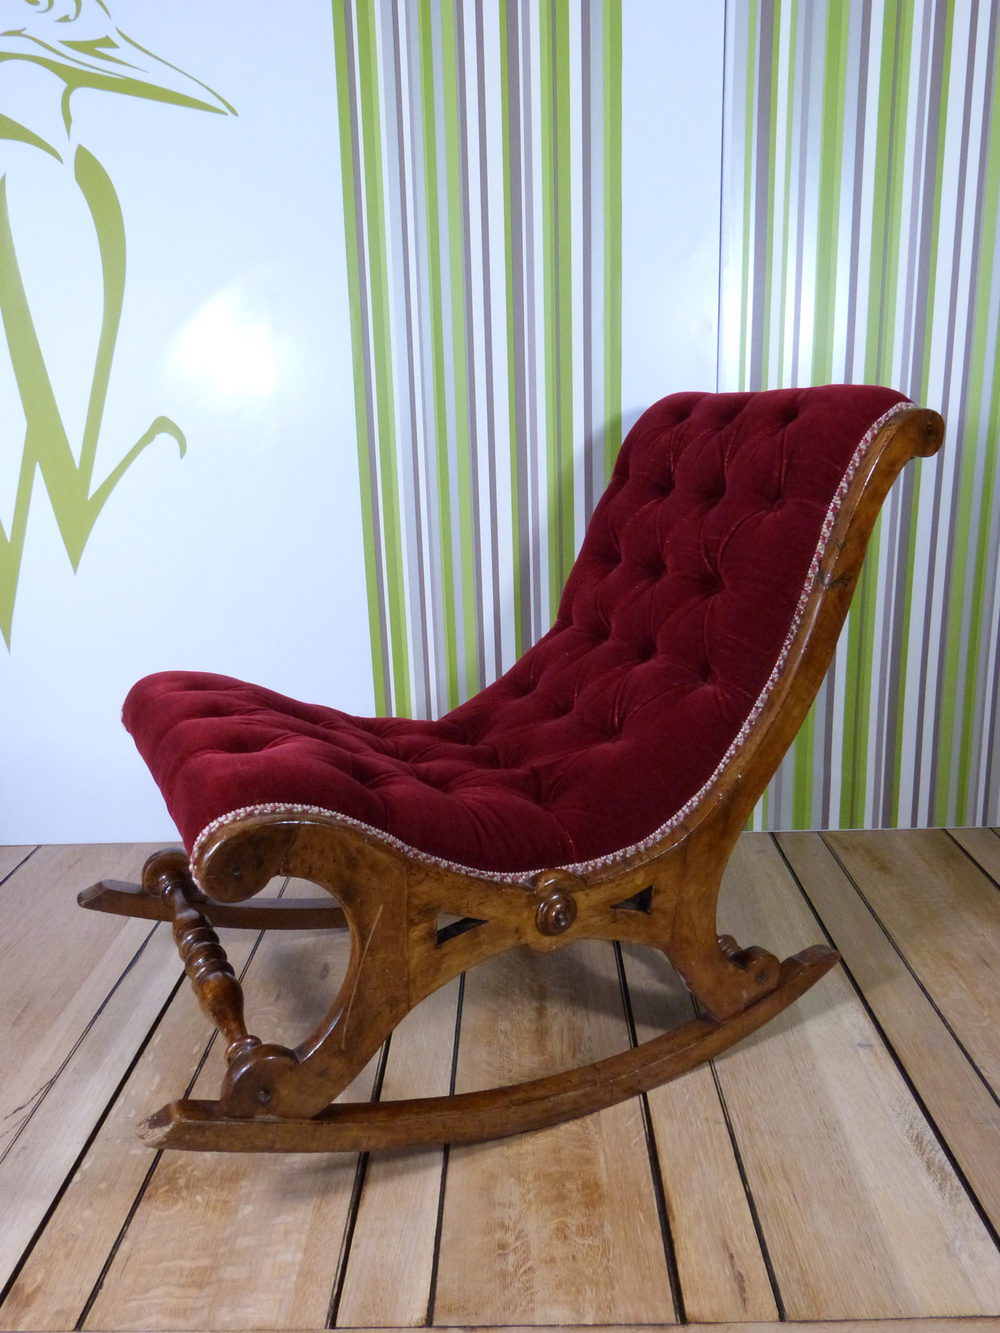 antique rocking chairs for sale pottery barn irving leather chair reviews santa's sleigh - antiques atlas